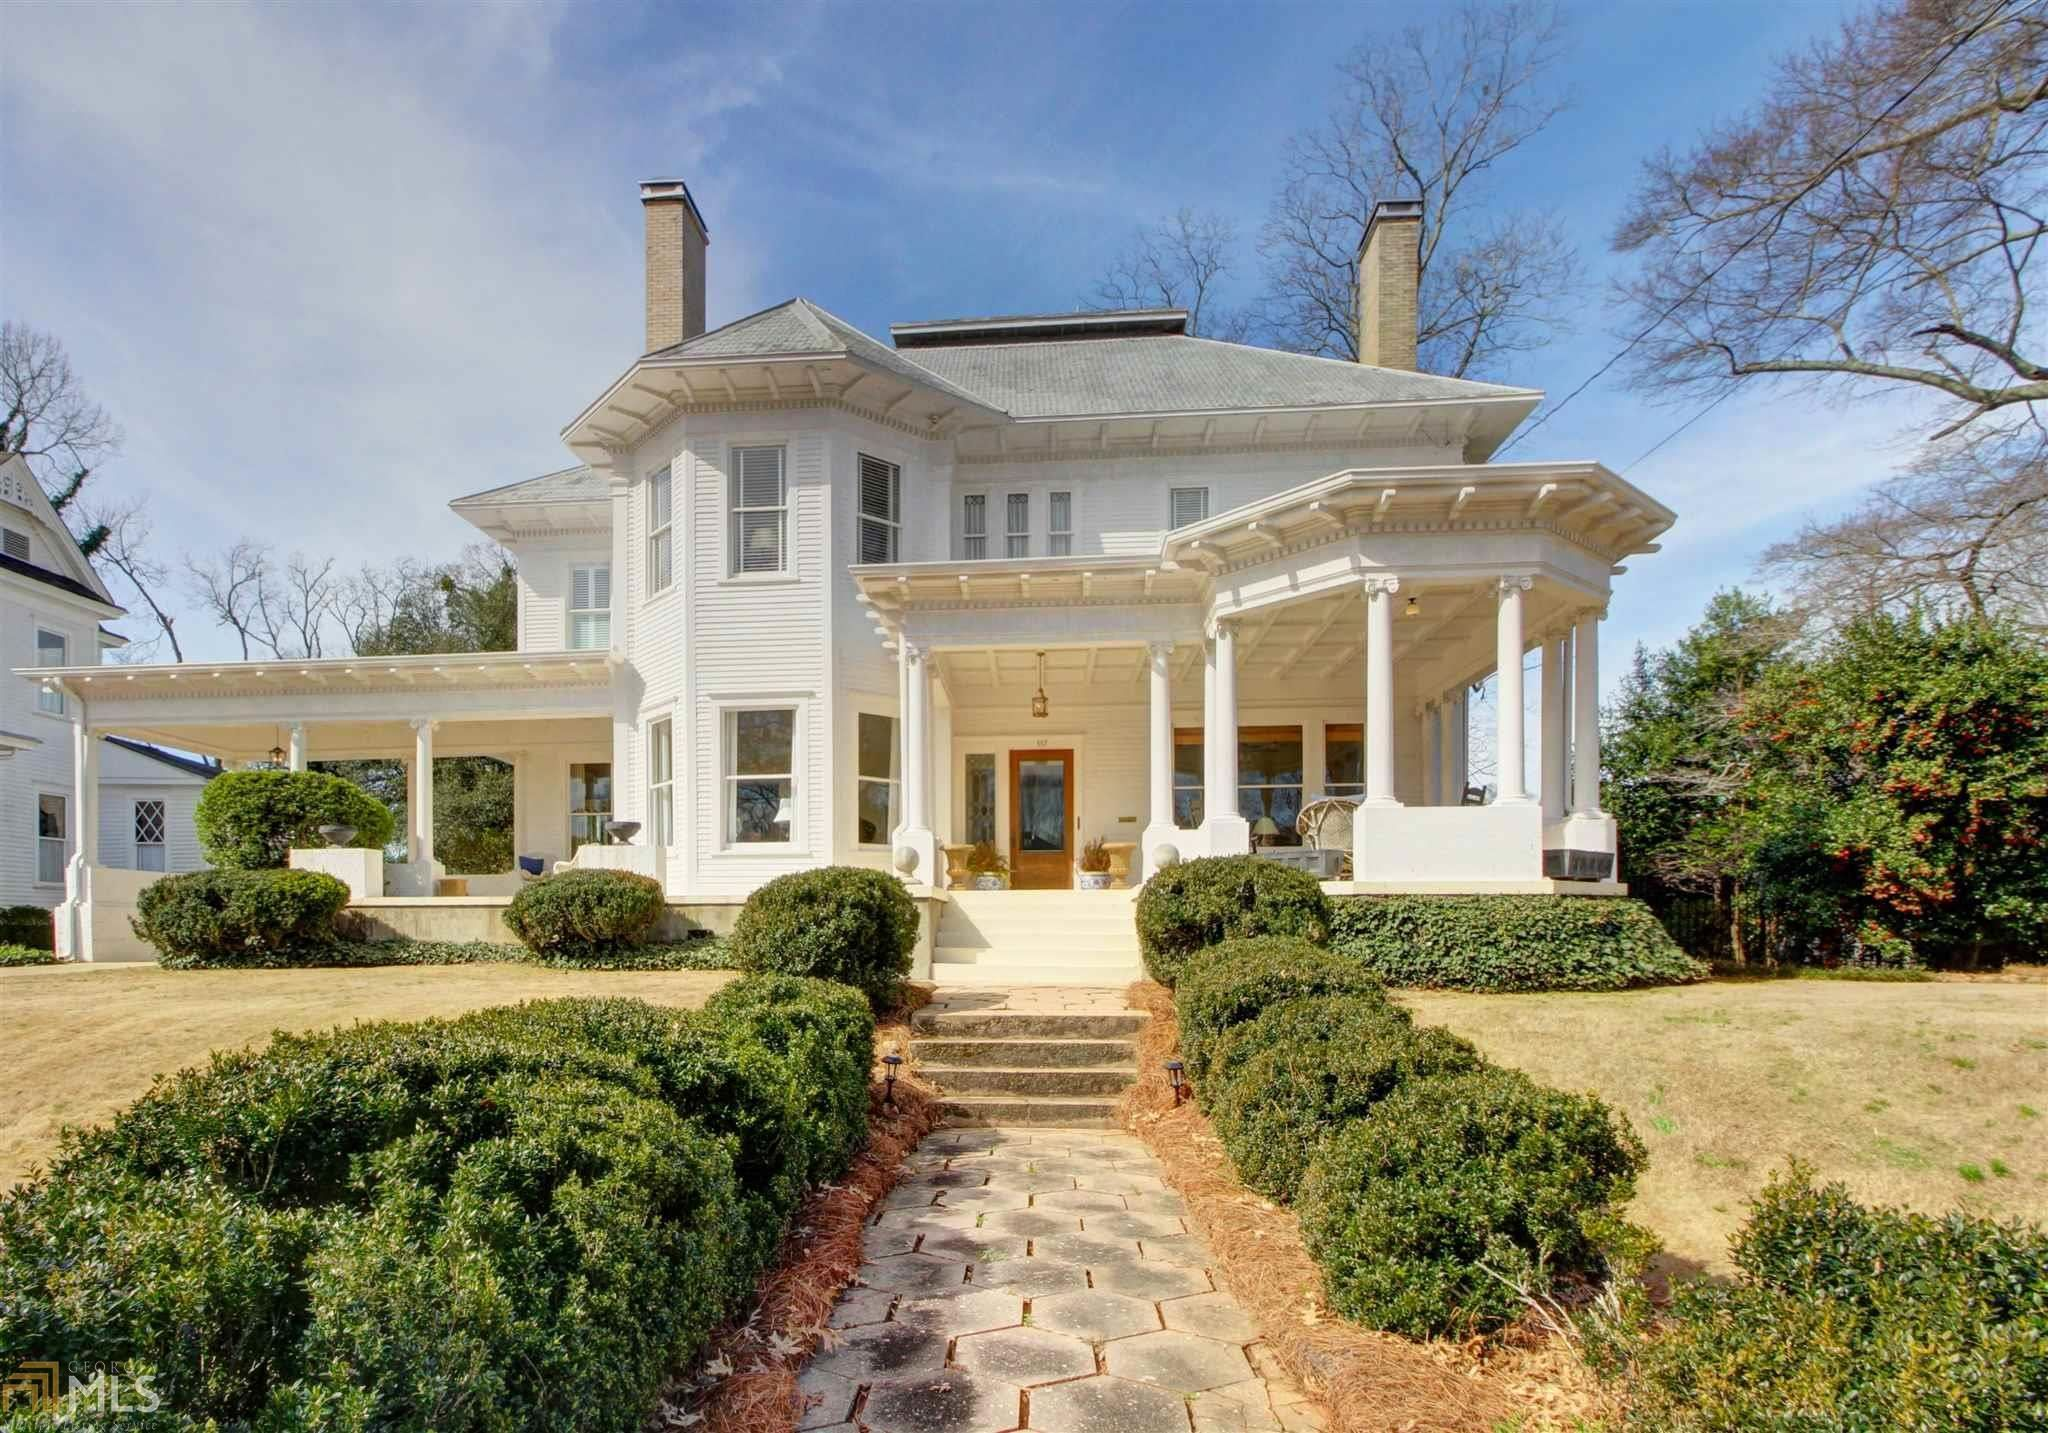 Immaculate 1920s Historic Home Historic home, Old houses